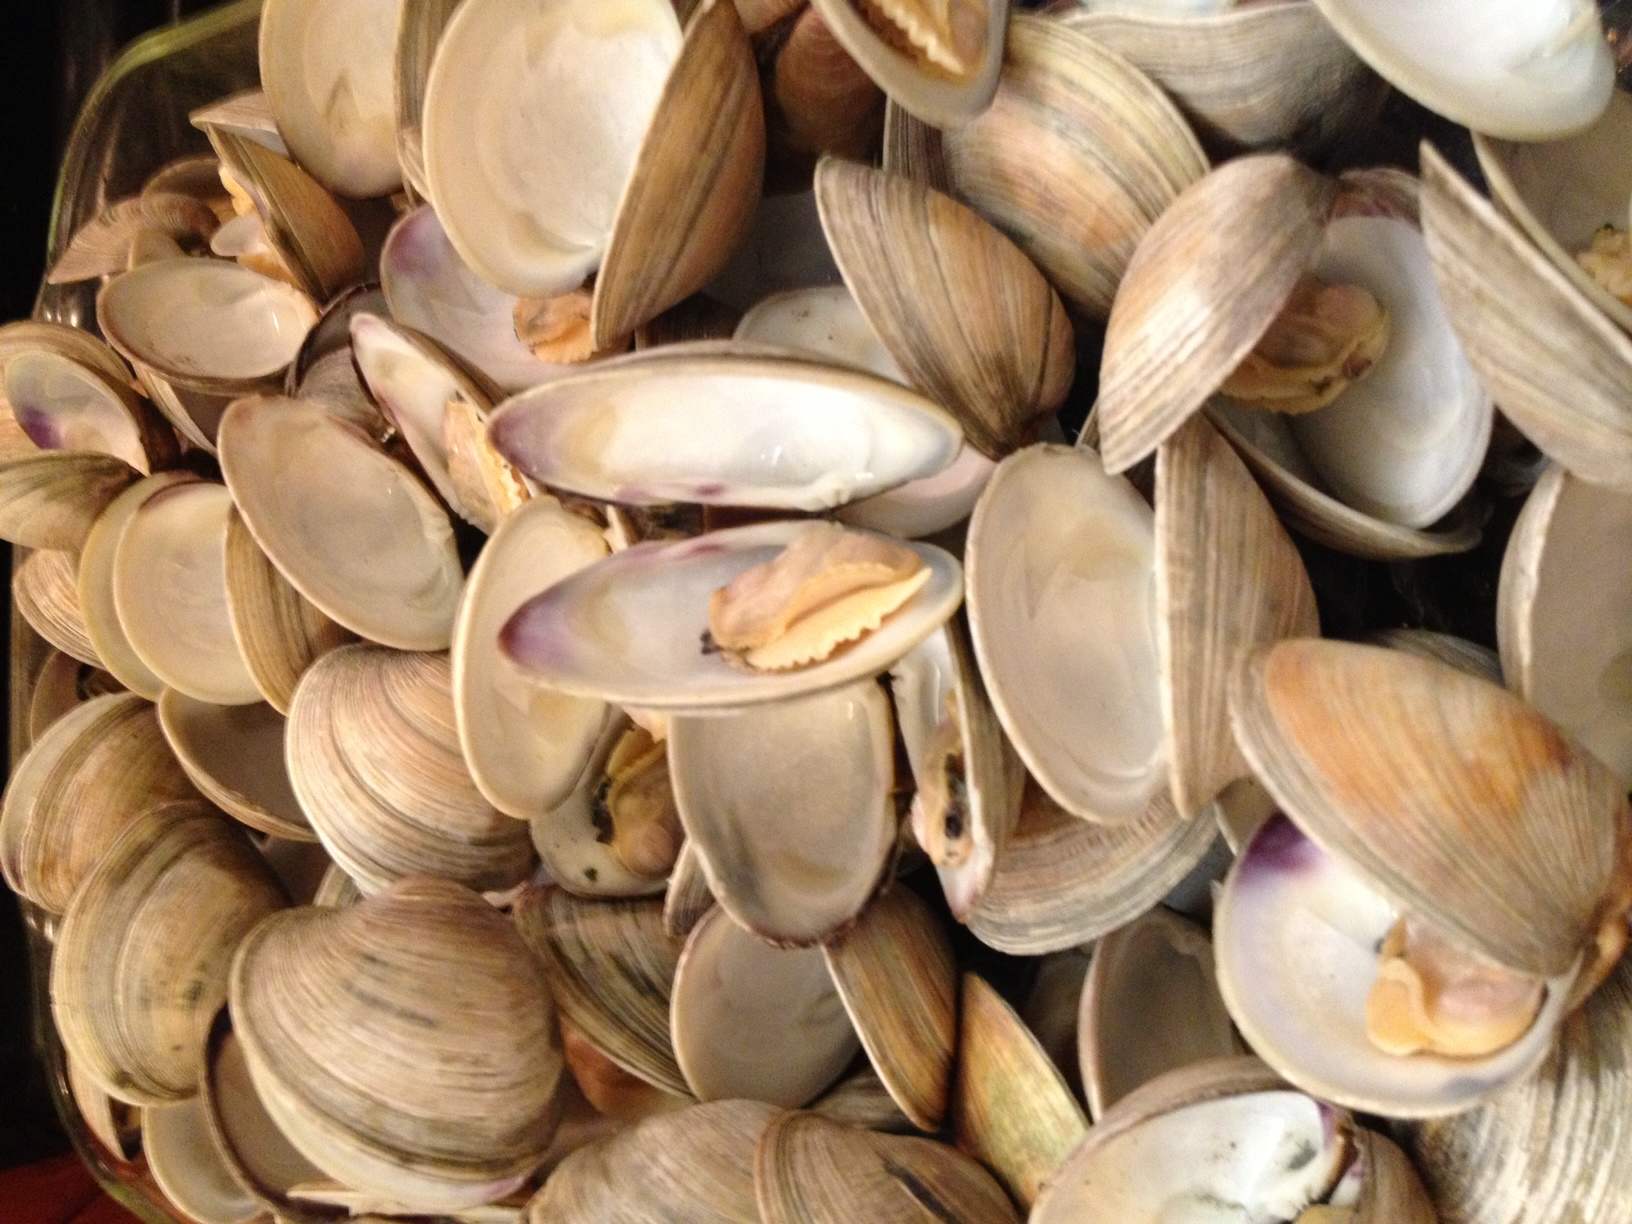 how to cook large clams